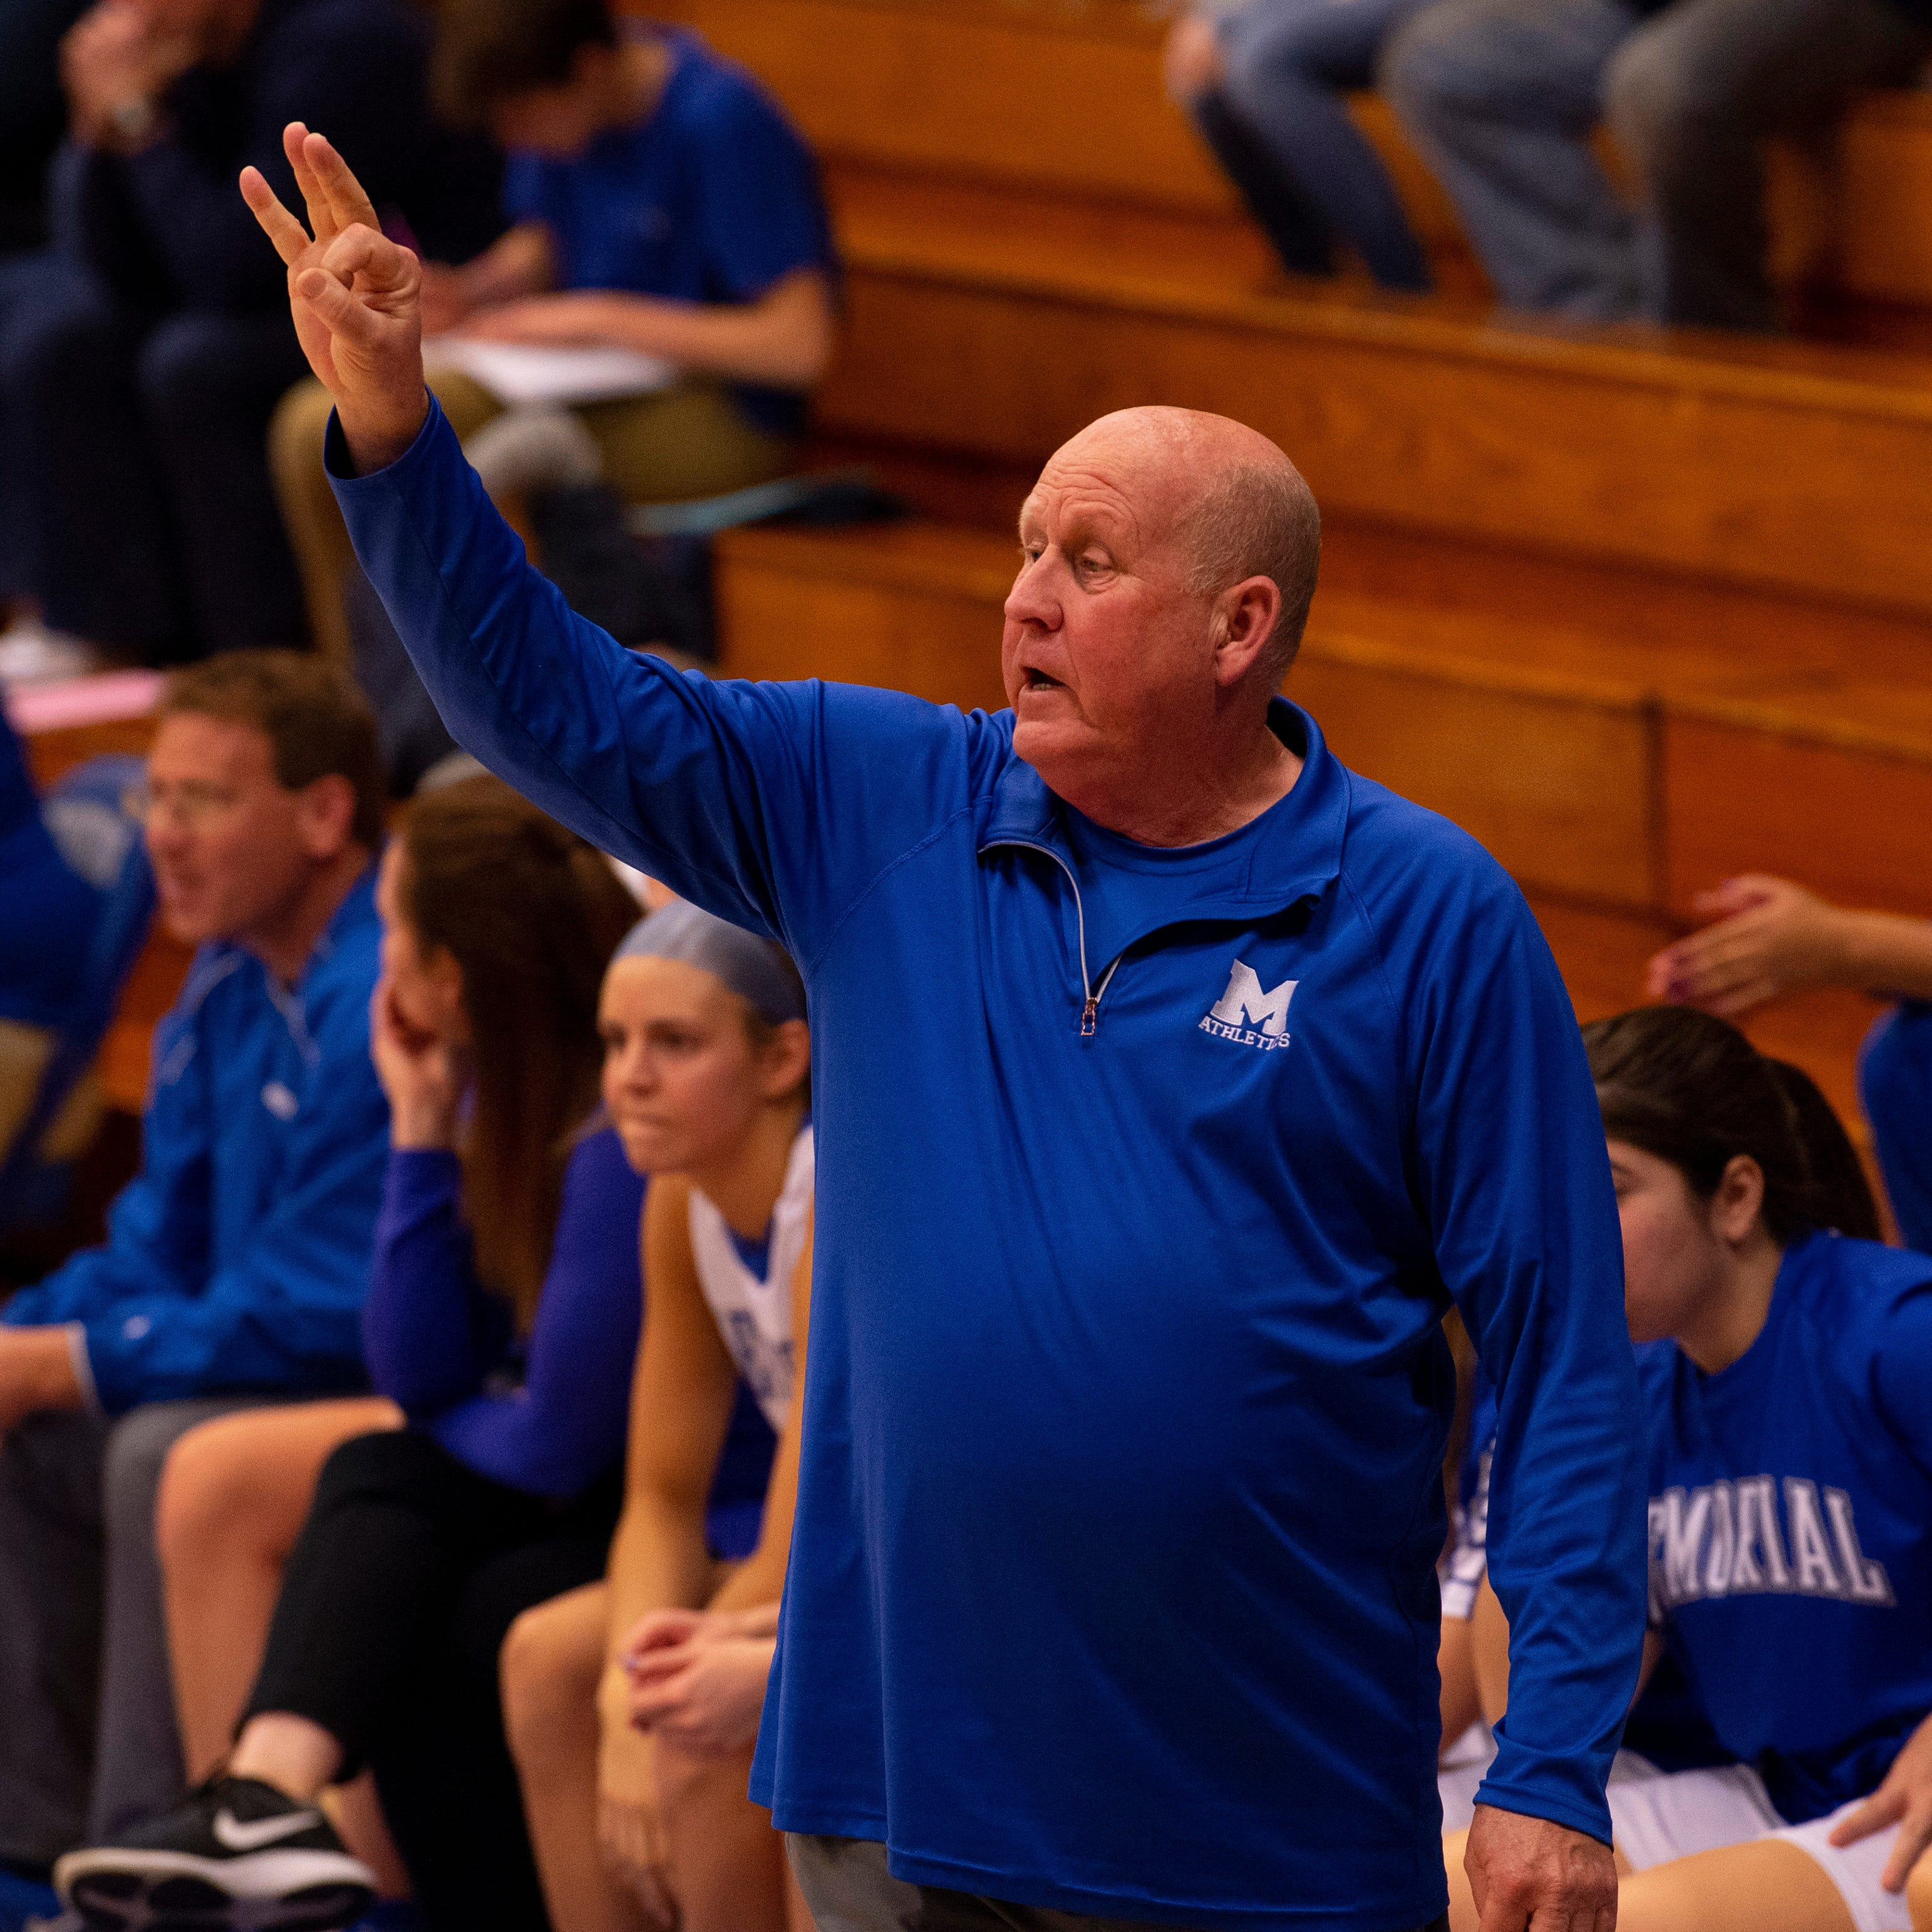 Memorial girls basketball coach Bruce Dockery earns 500th career victory